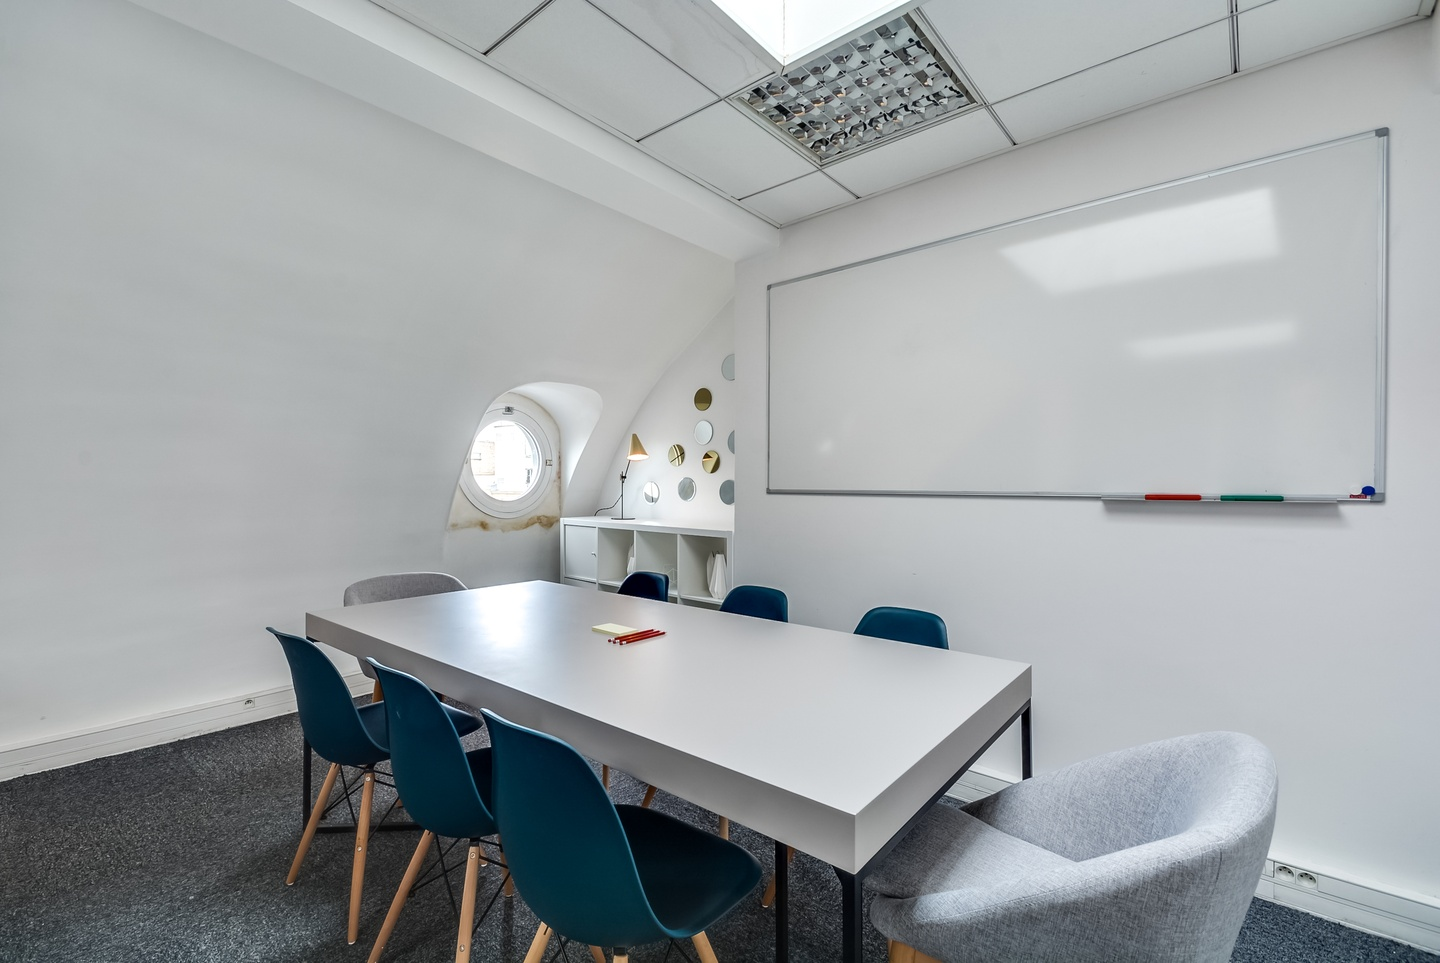 Paris Train station meeting rooms Meeting room Ruche image 2